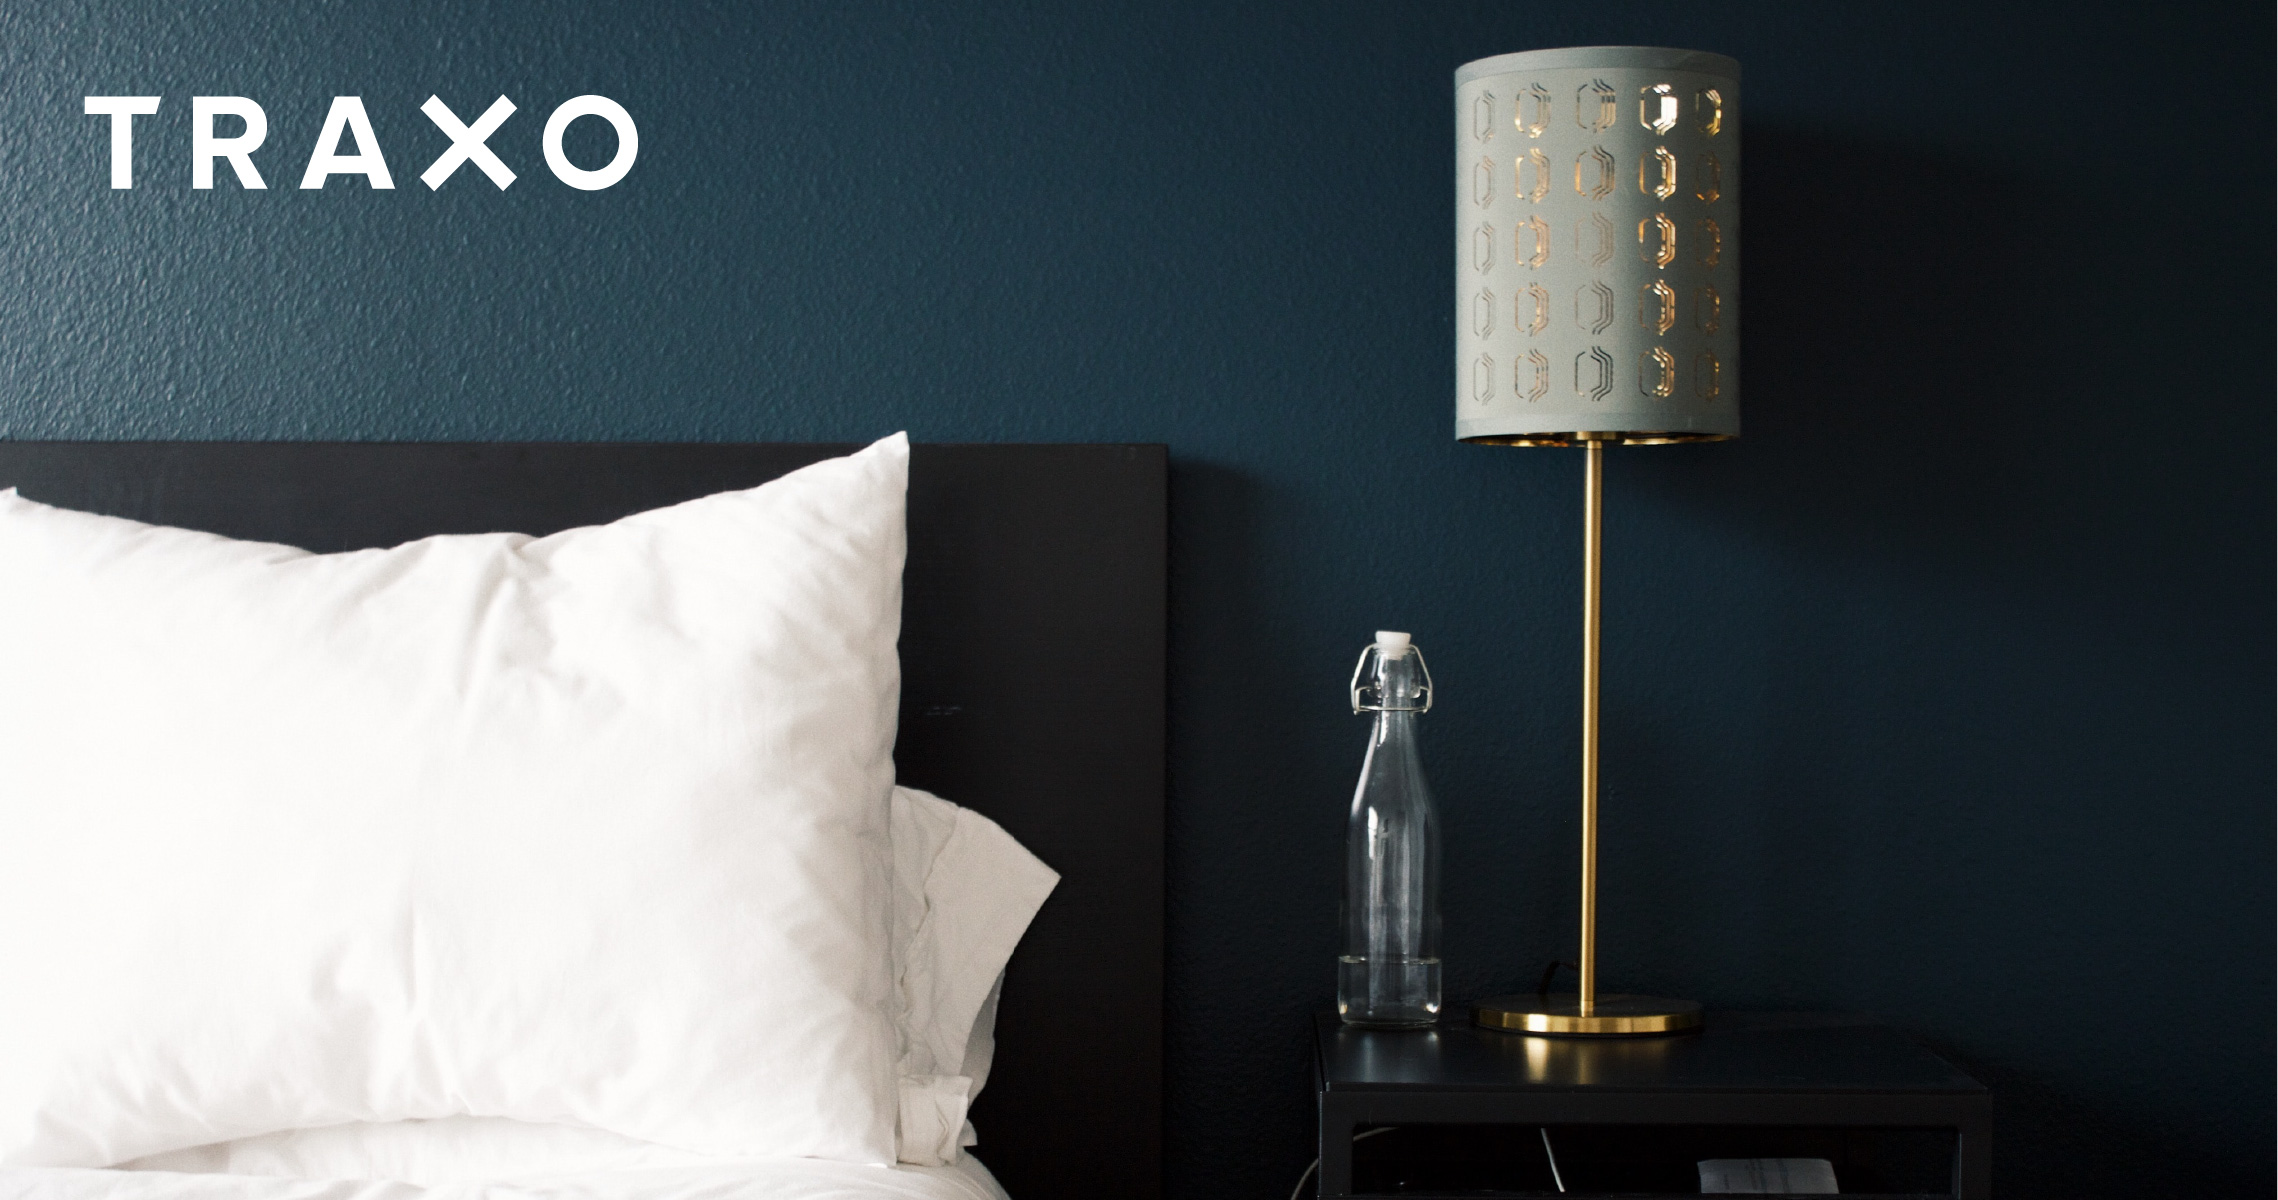 Decorative Image - Hotel Bed with Traxo Logo